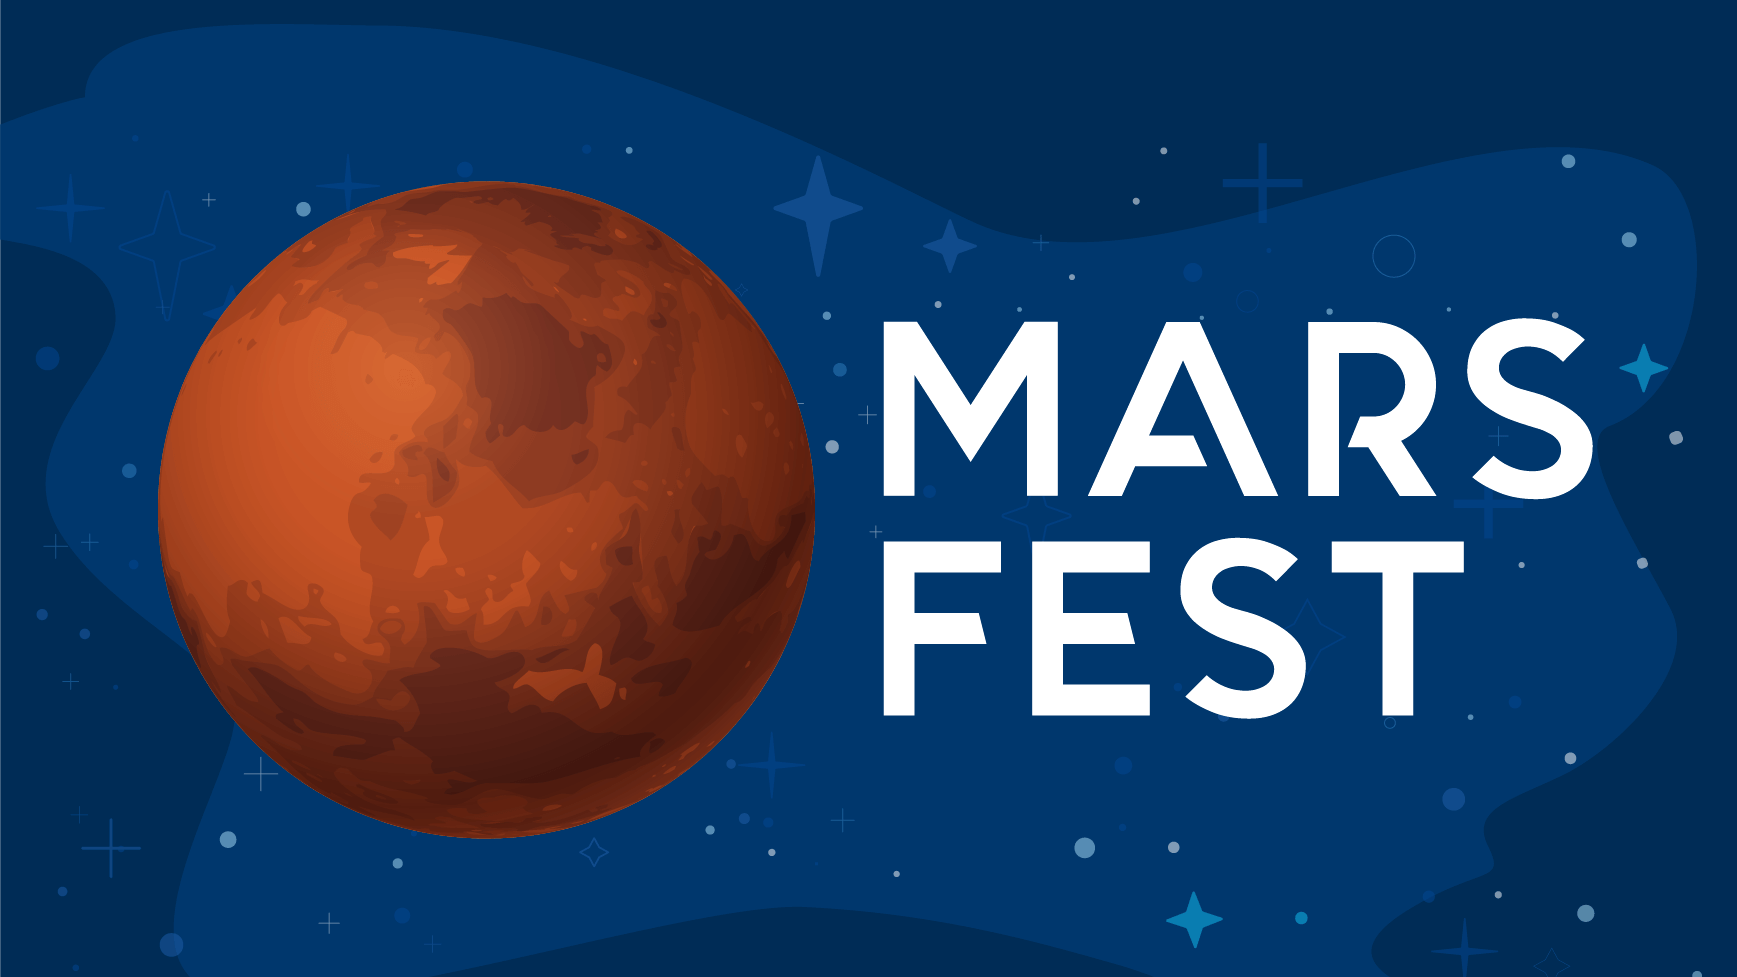 Mars Fest Event - graphic Mars and stylized space background.